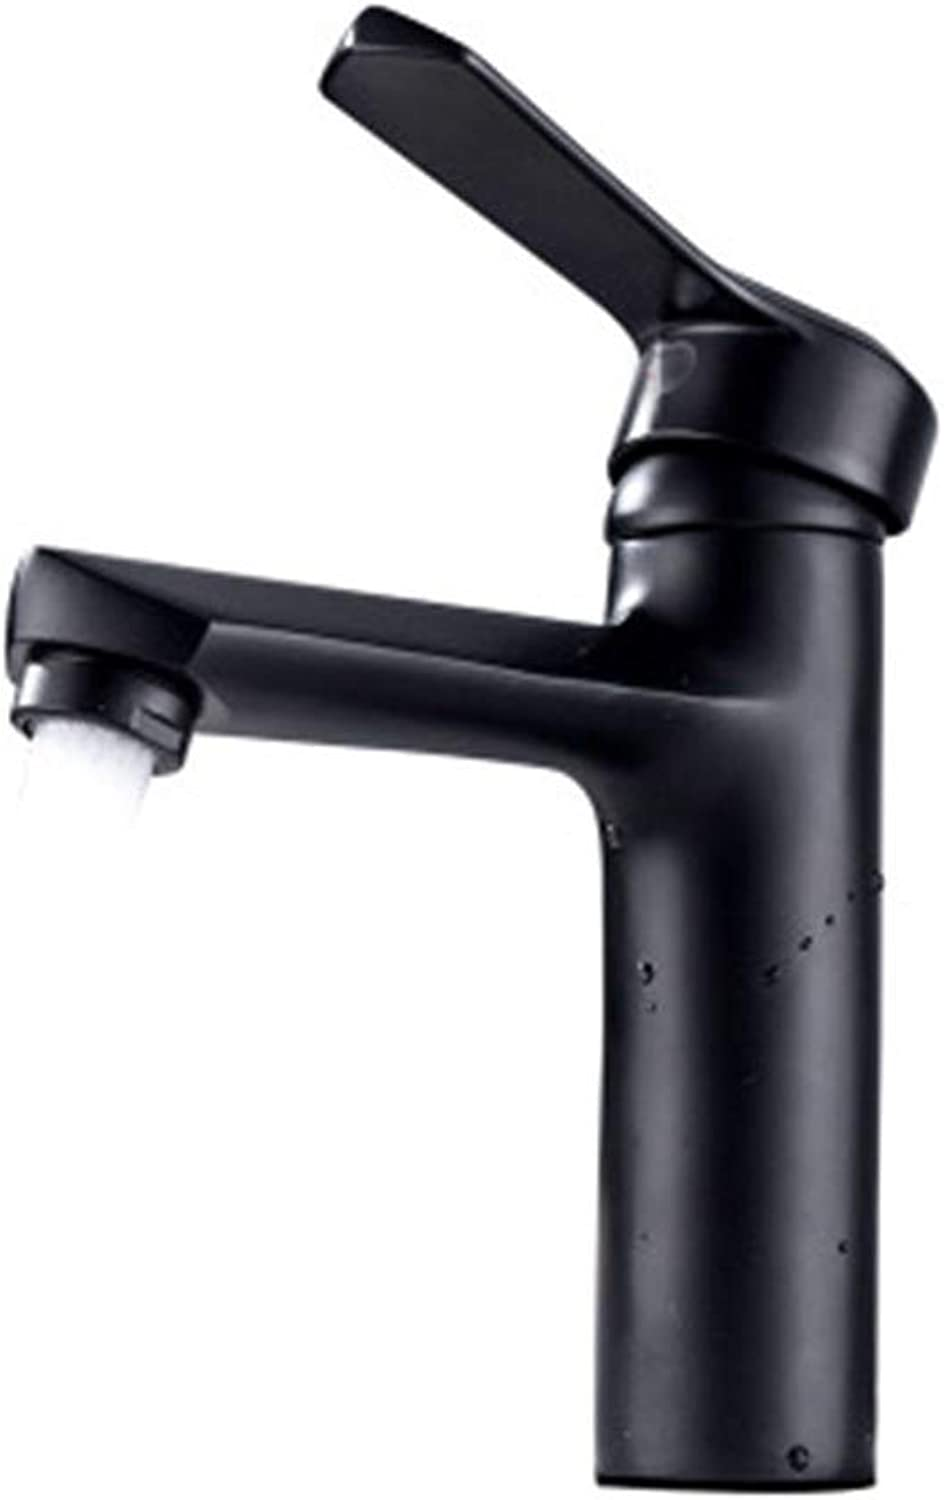 HARDY-YI Water-tap Sink Faucet Hot And Cold Bathroom Basin Pot Filling Faucet Black Above Counter Basin Bathroom Wash Basin Lavatory Faucet -0885